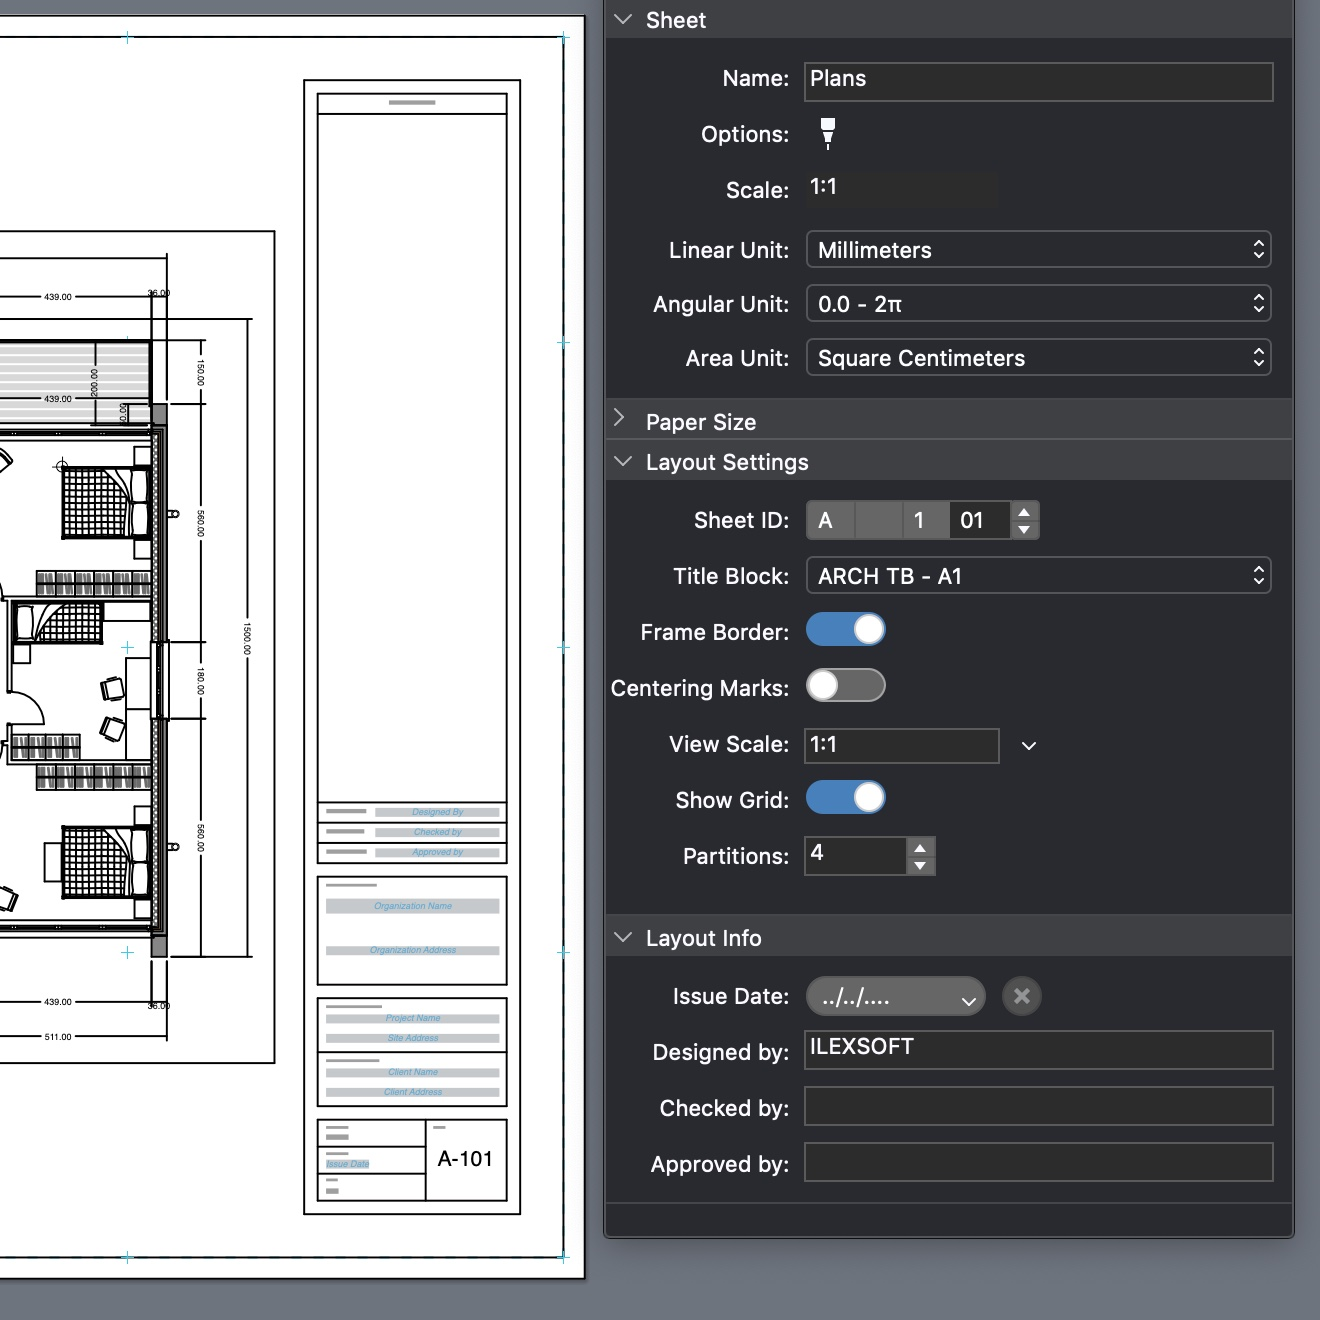 HighDesign R5 Layout, Viewports and Title Block